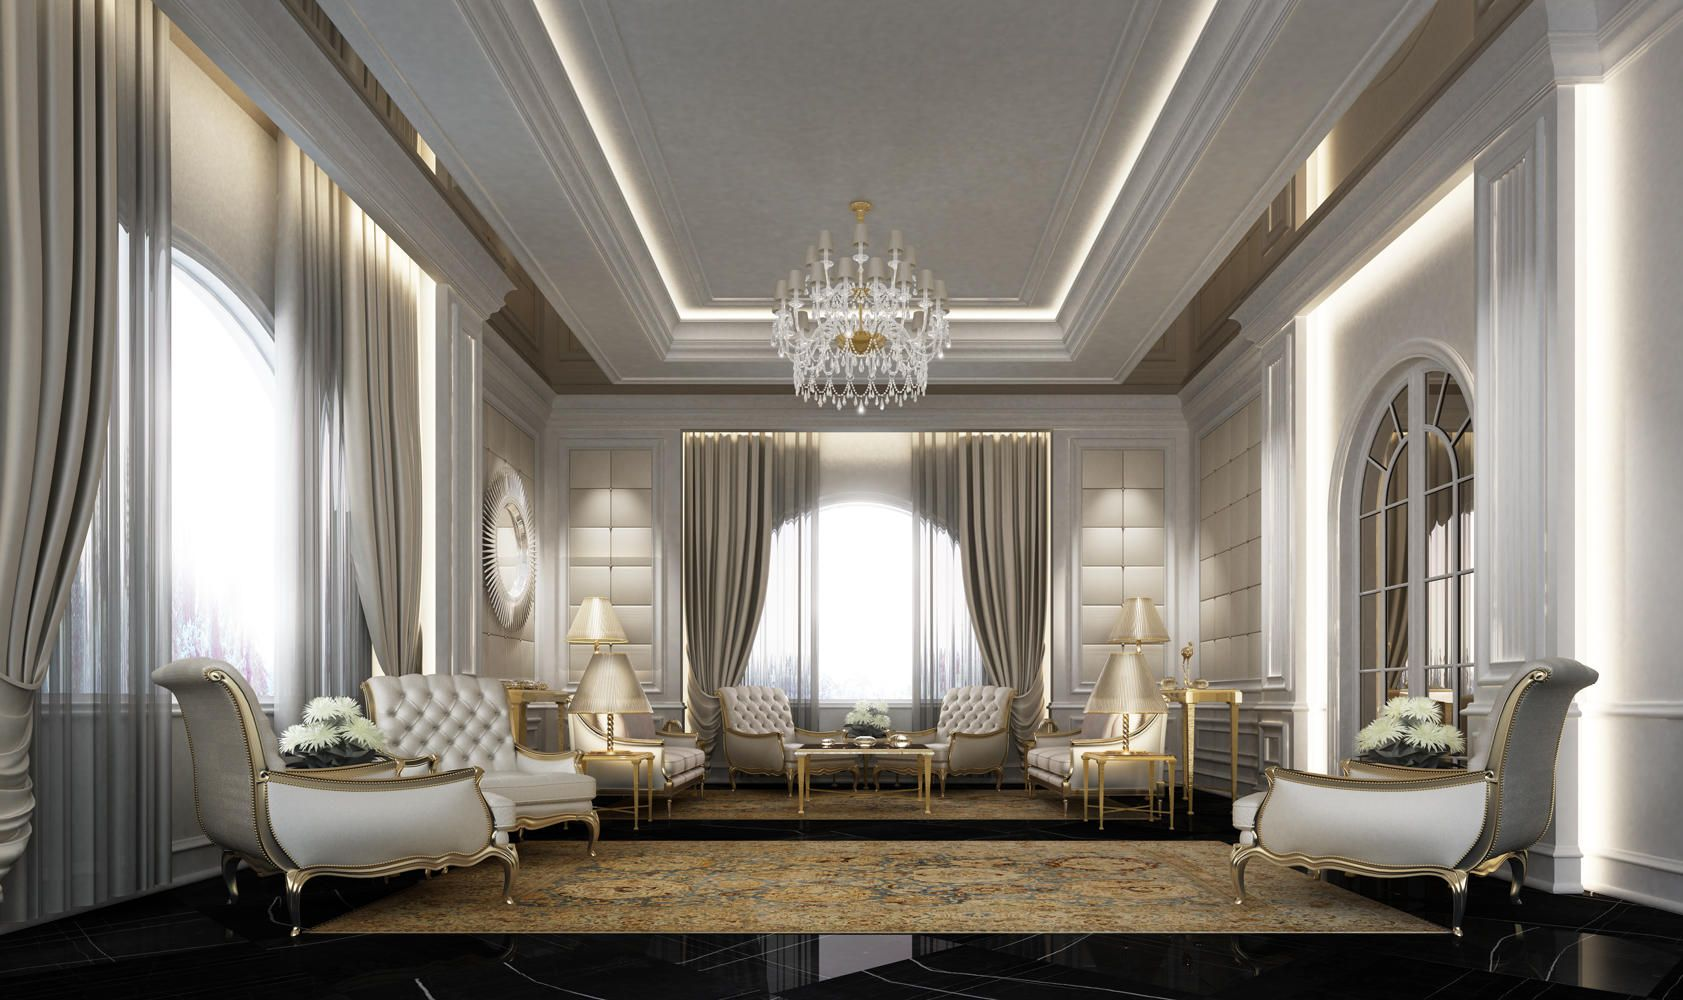 arabic majlis designs ions design interior design. Black Bedroom Furniture Sets. Home Design Ideas